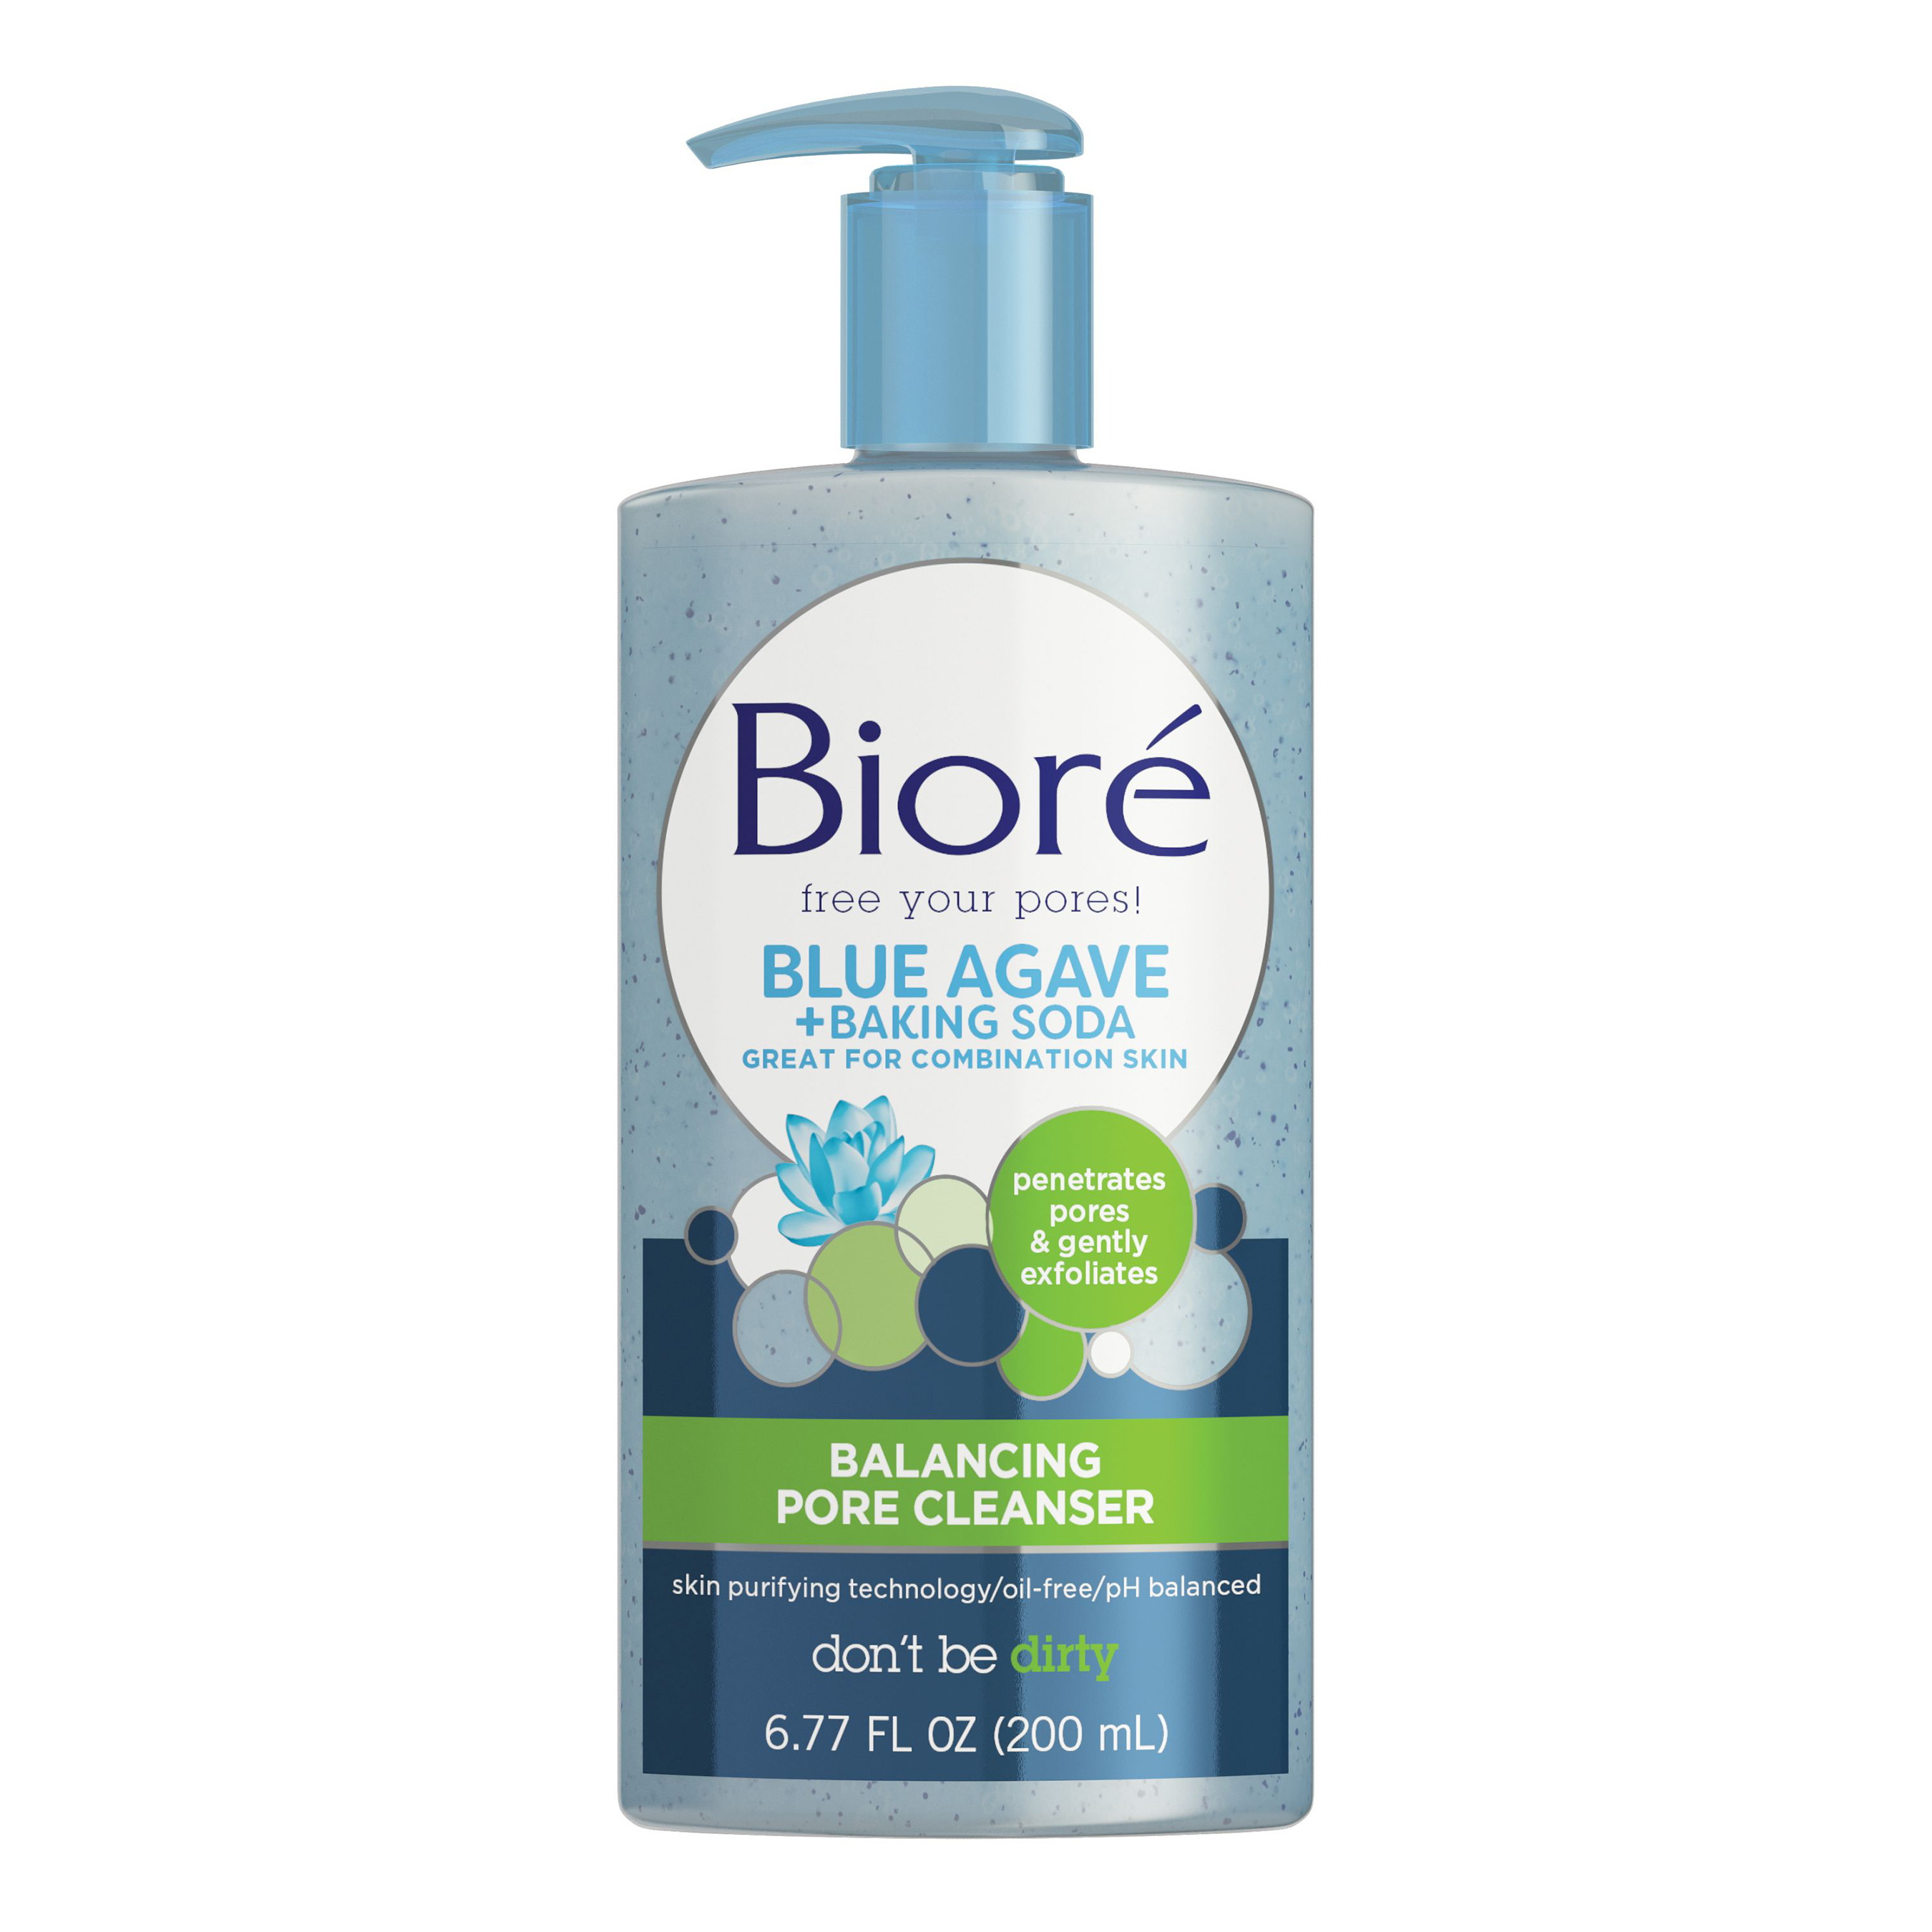 Biore(R) Blue Agave + Baking Soda Balancing Pore Cleanser